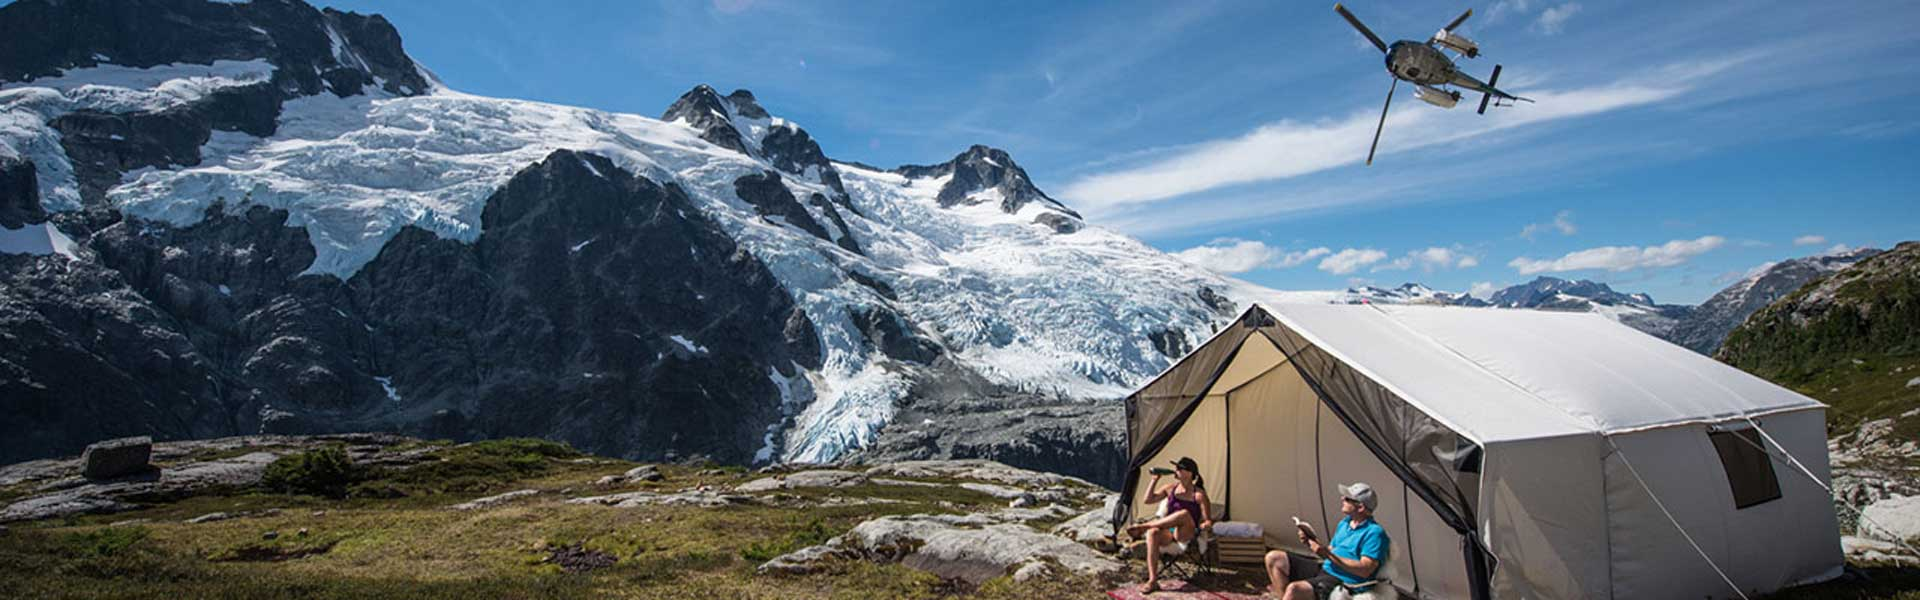 British Columbia Vacation Packages | British Columbia Road Trips